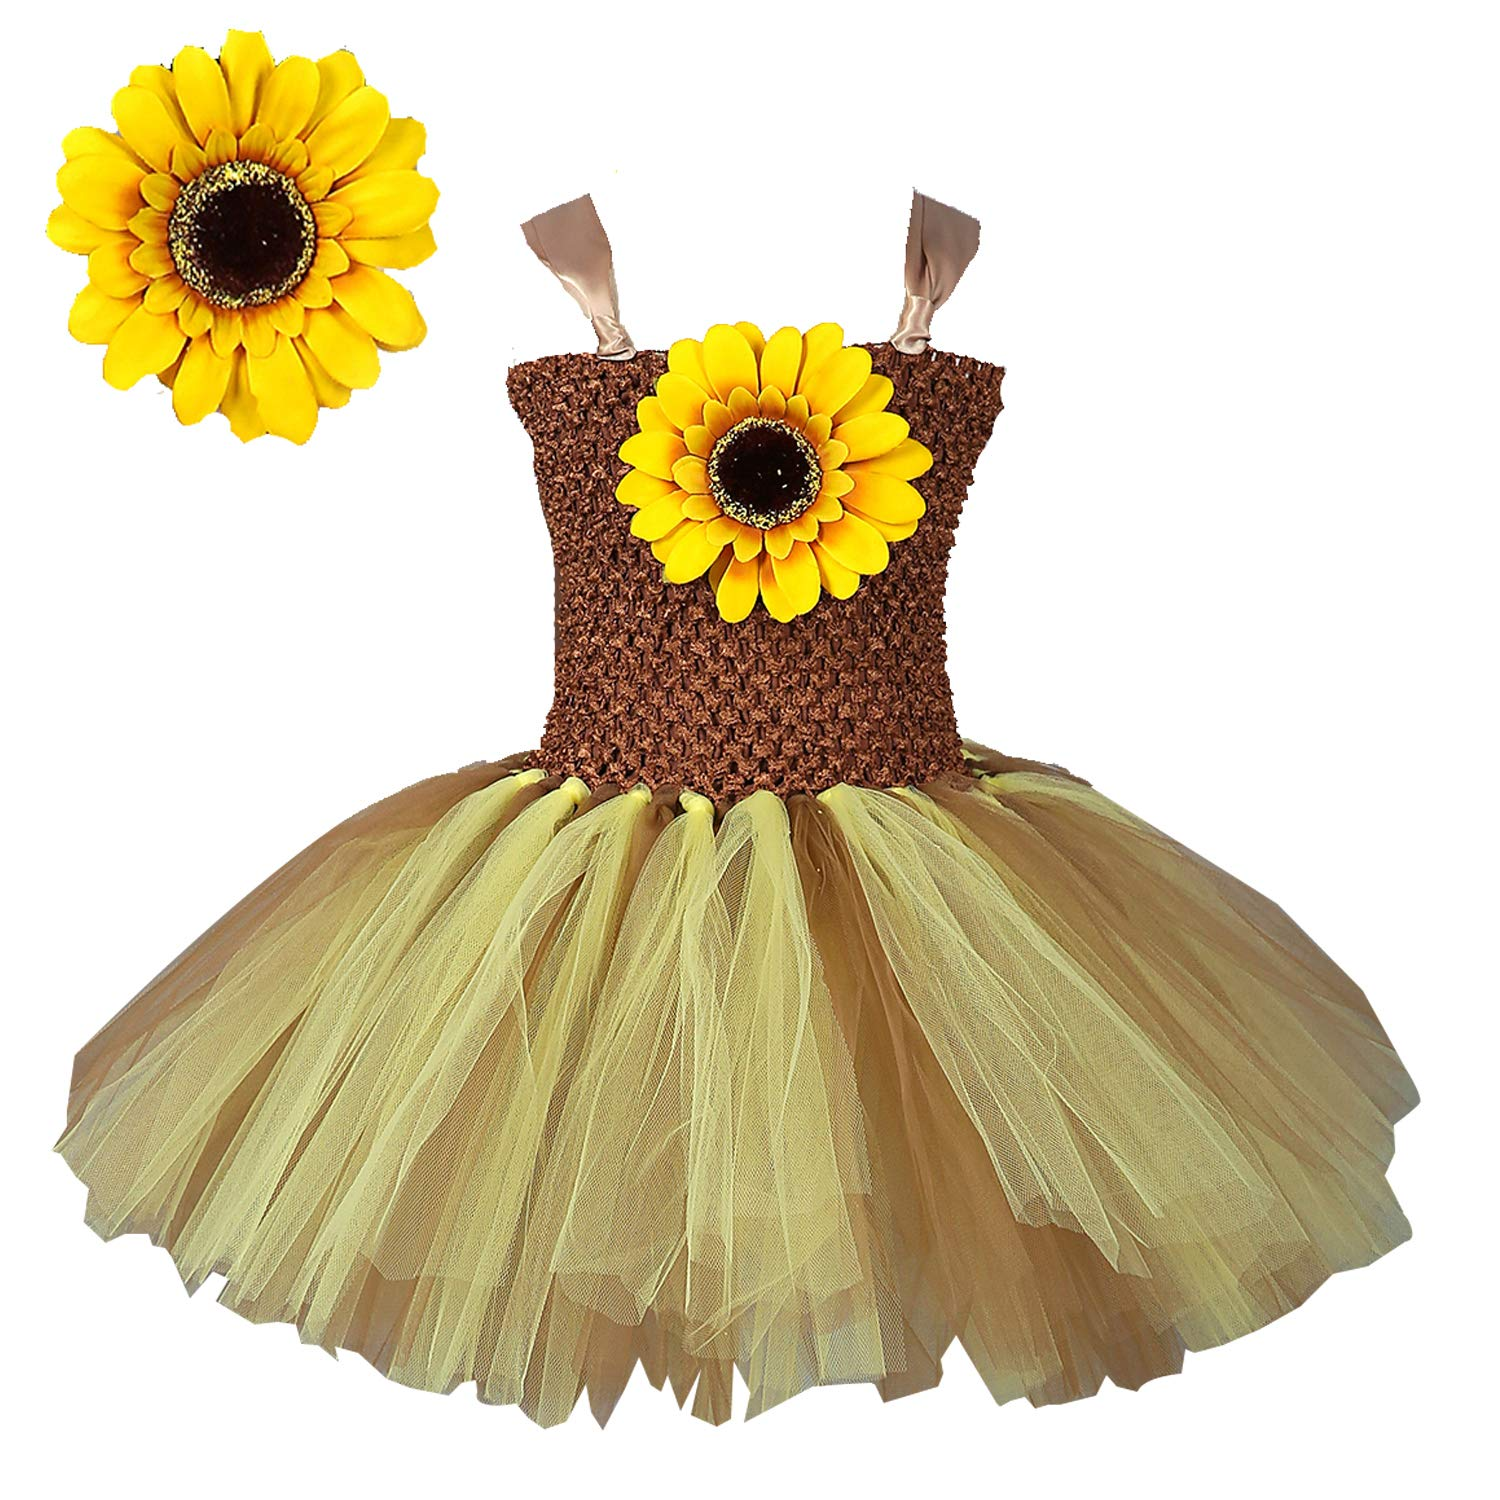 c8704e4f4a45f Meelino Toddler Baby Girls Tutu Dress Sunflower Lace-up Costumes Outfits  Dress Up